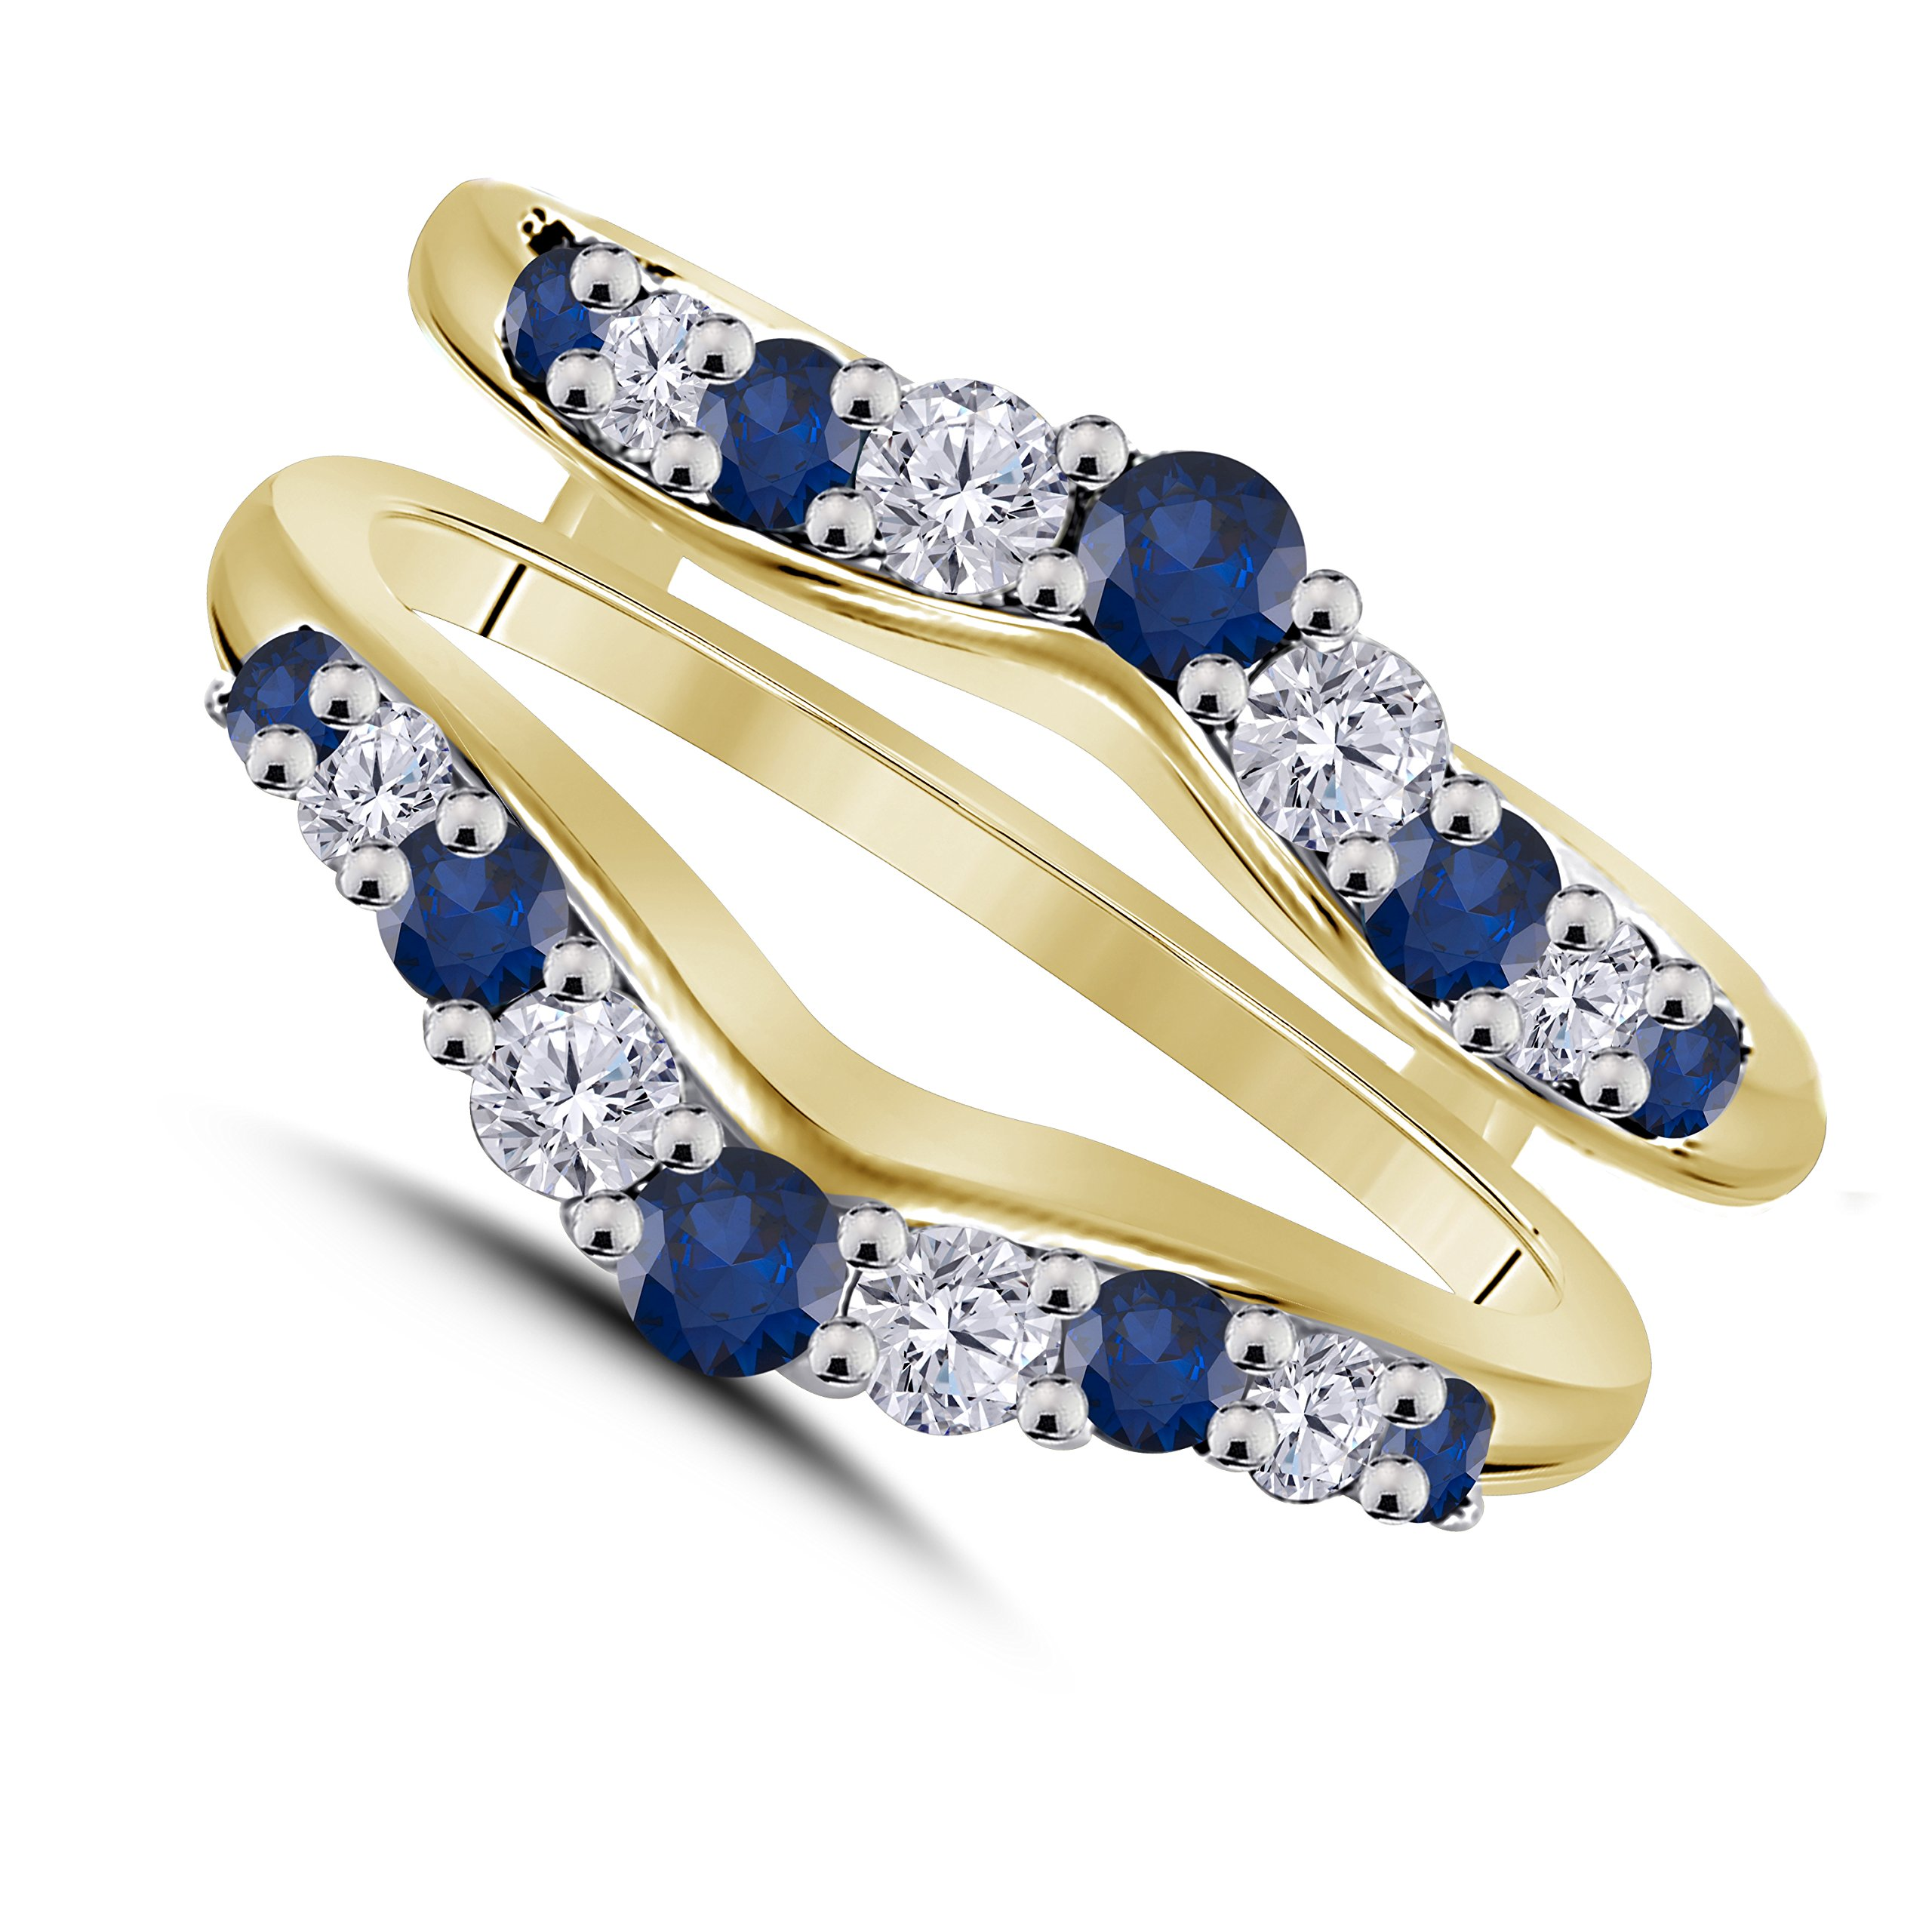 Gems and Jewels 1/2 Ct 14K Yellow Gold Plated Round Cut White Cubic Zirconia & Blue Sapphire Ladies Wedding Band Guard Double Ring